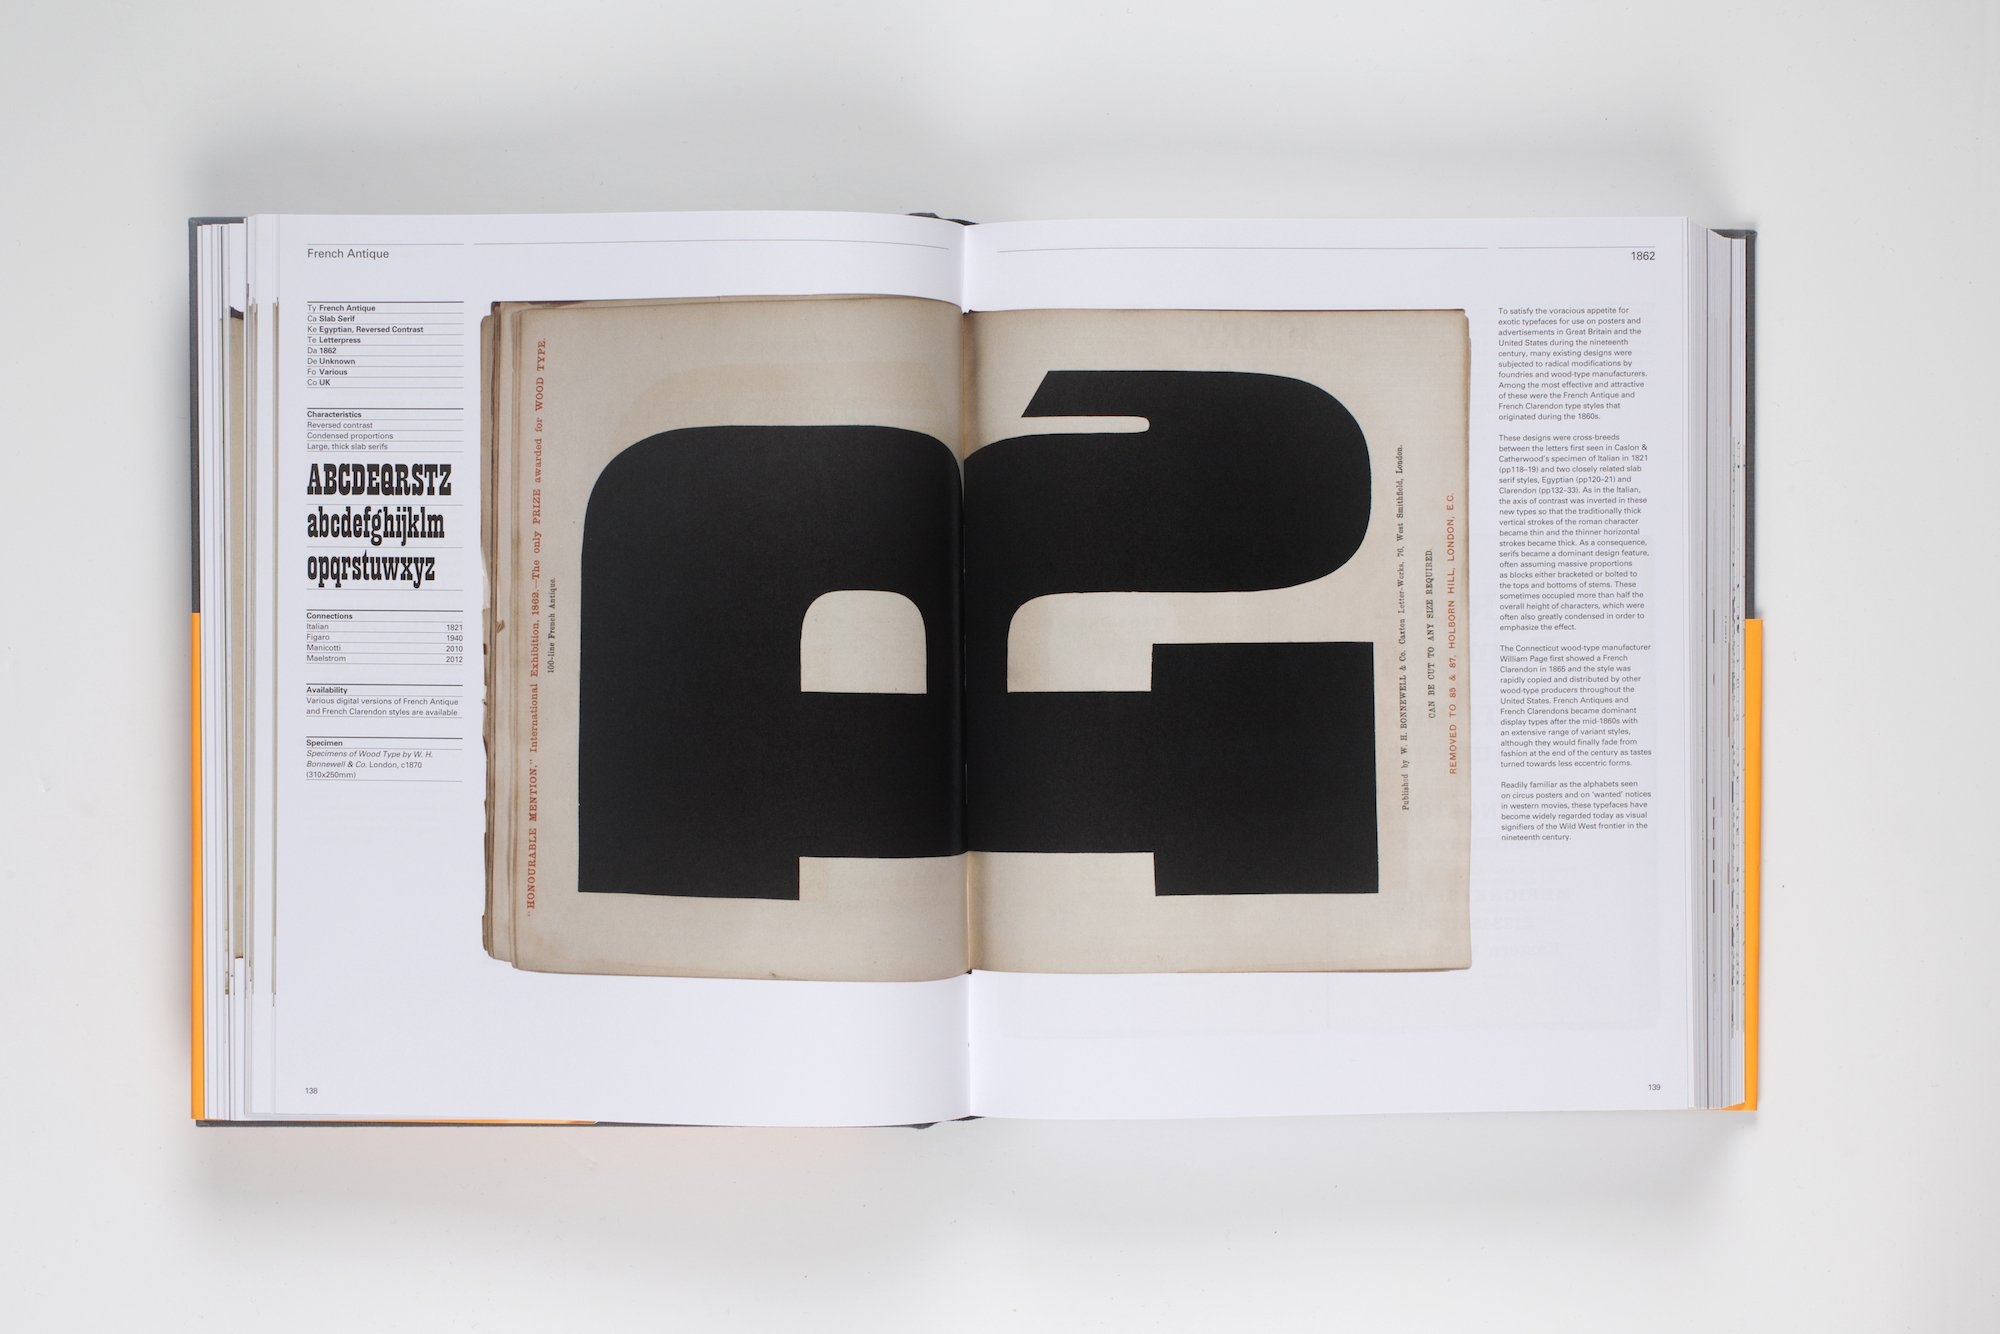 The Visual History of Type published by Laurence King